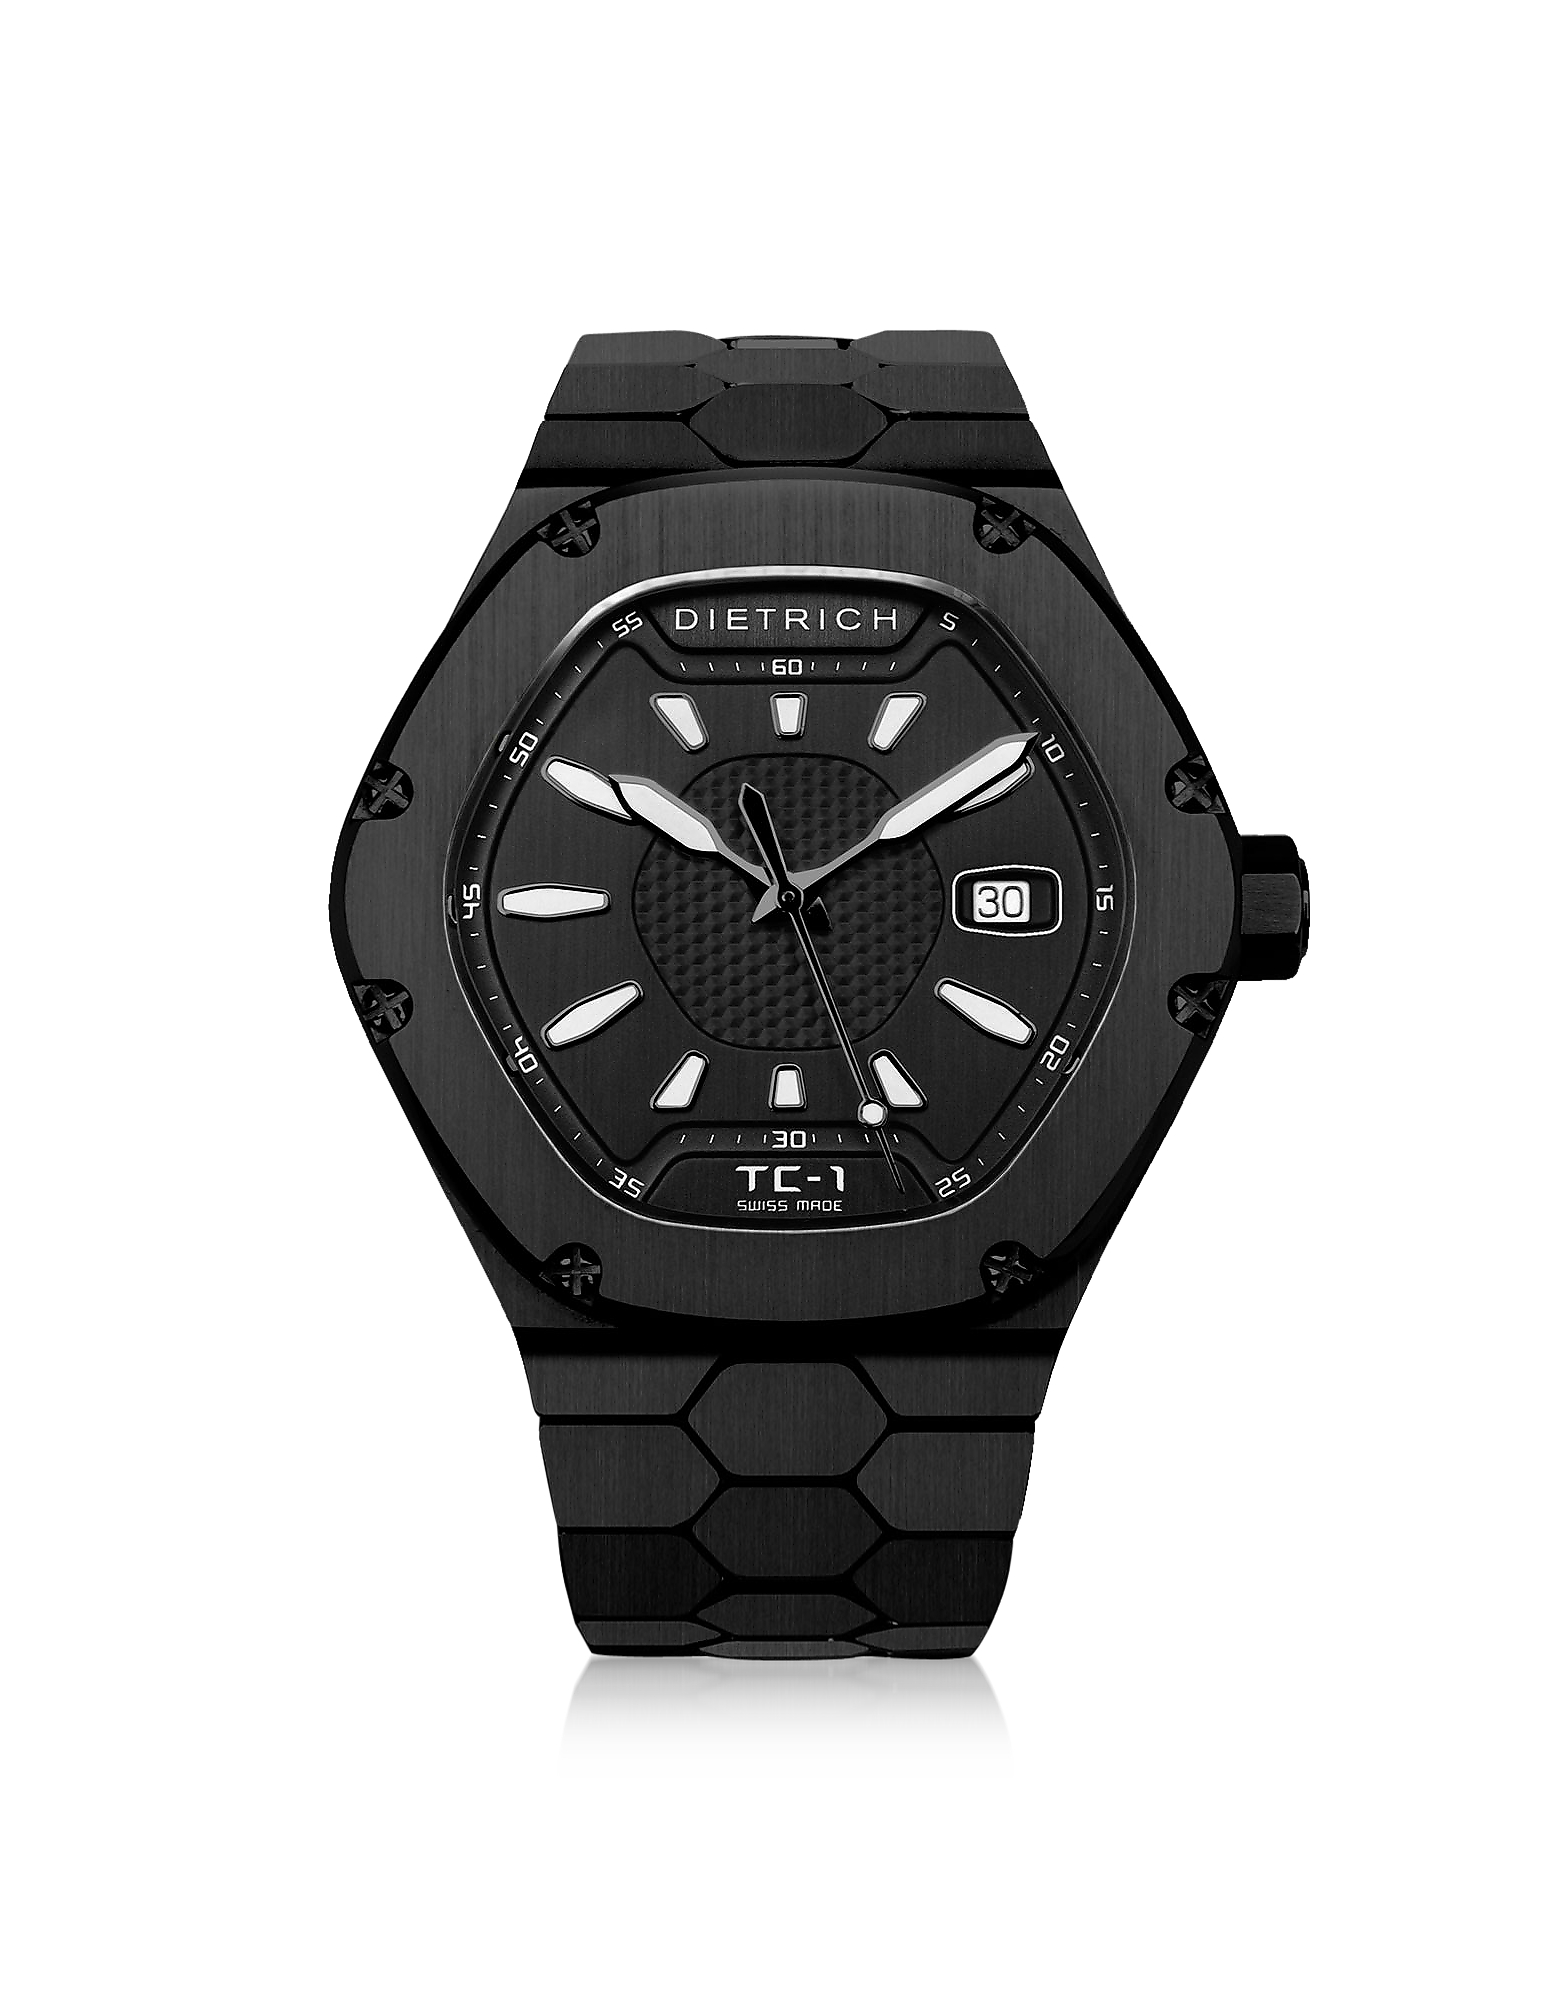 Dietrich Men's Watches, TC-1 PVD Stainless Steel w/White Luminova and Black Dial